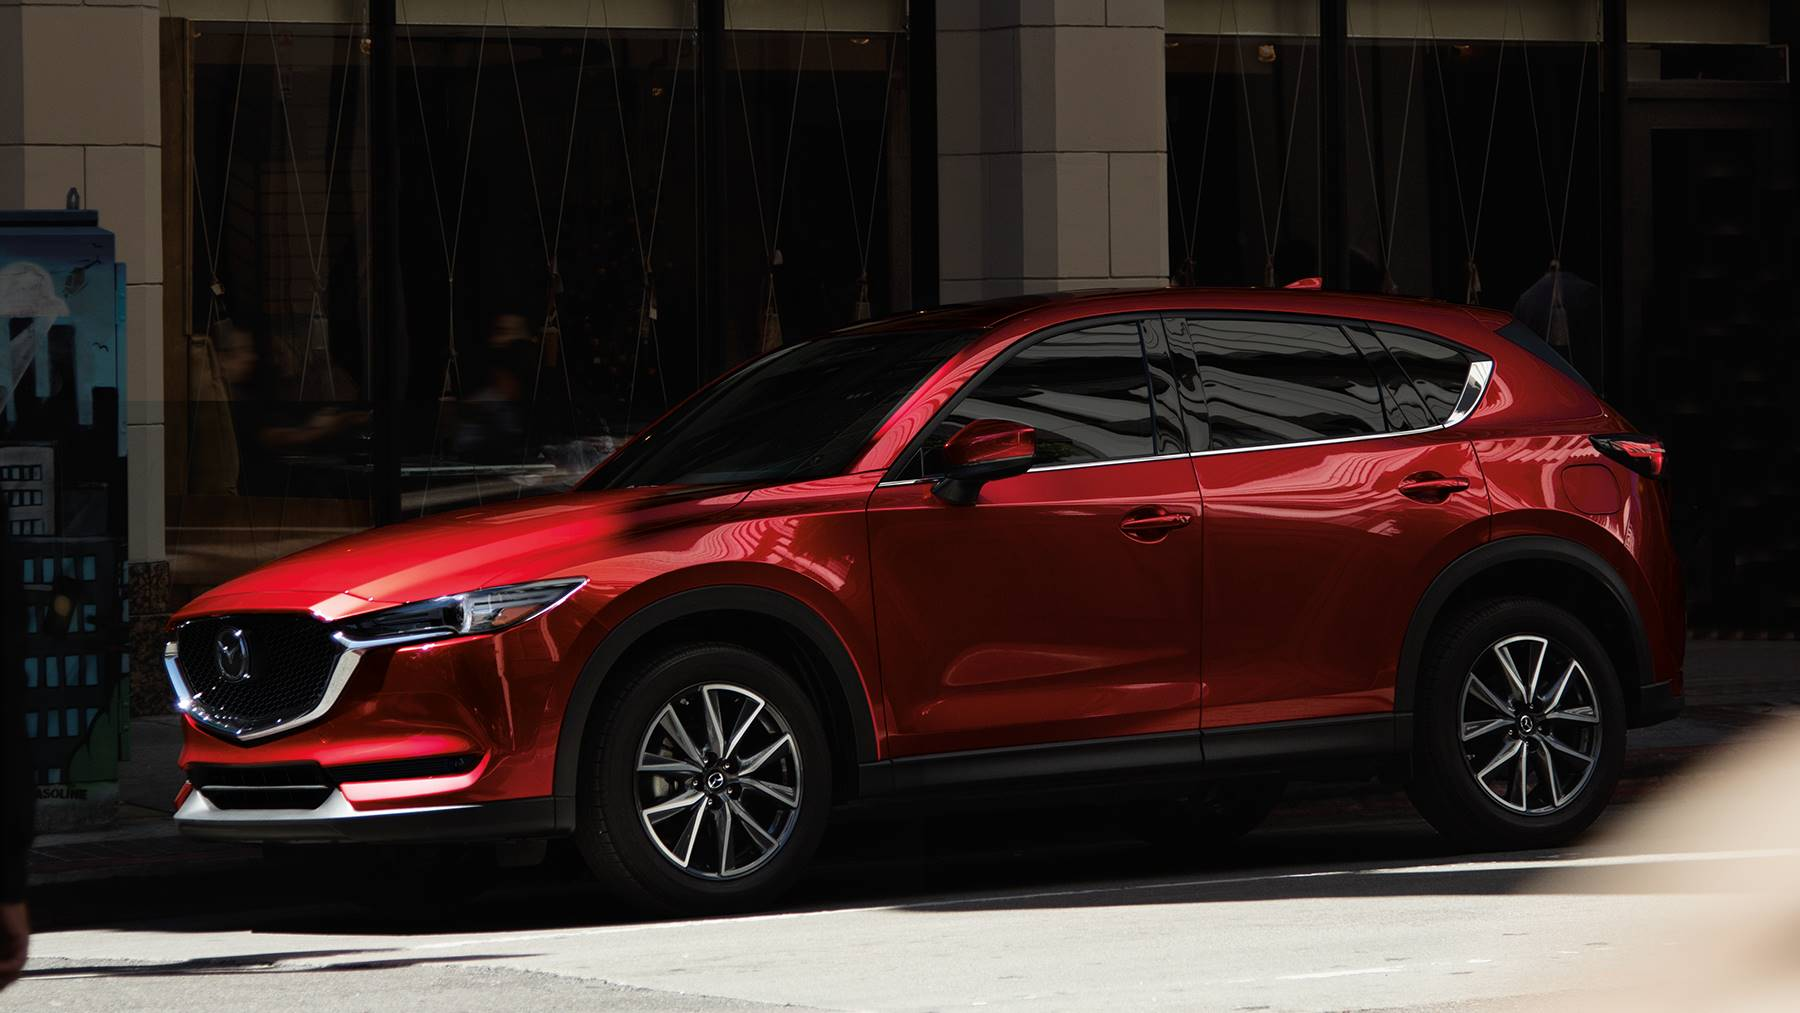 2018 Mazda Cx 5 Overview The News Wheel